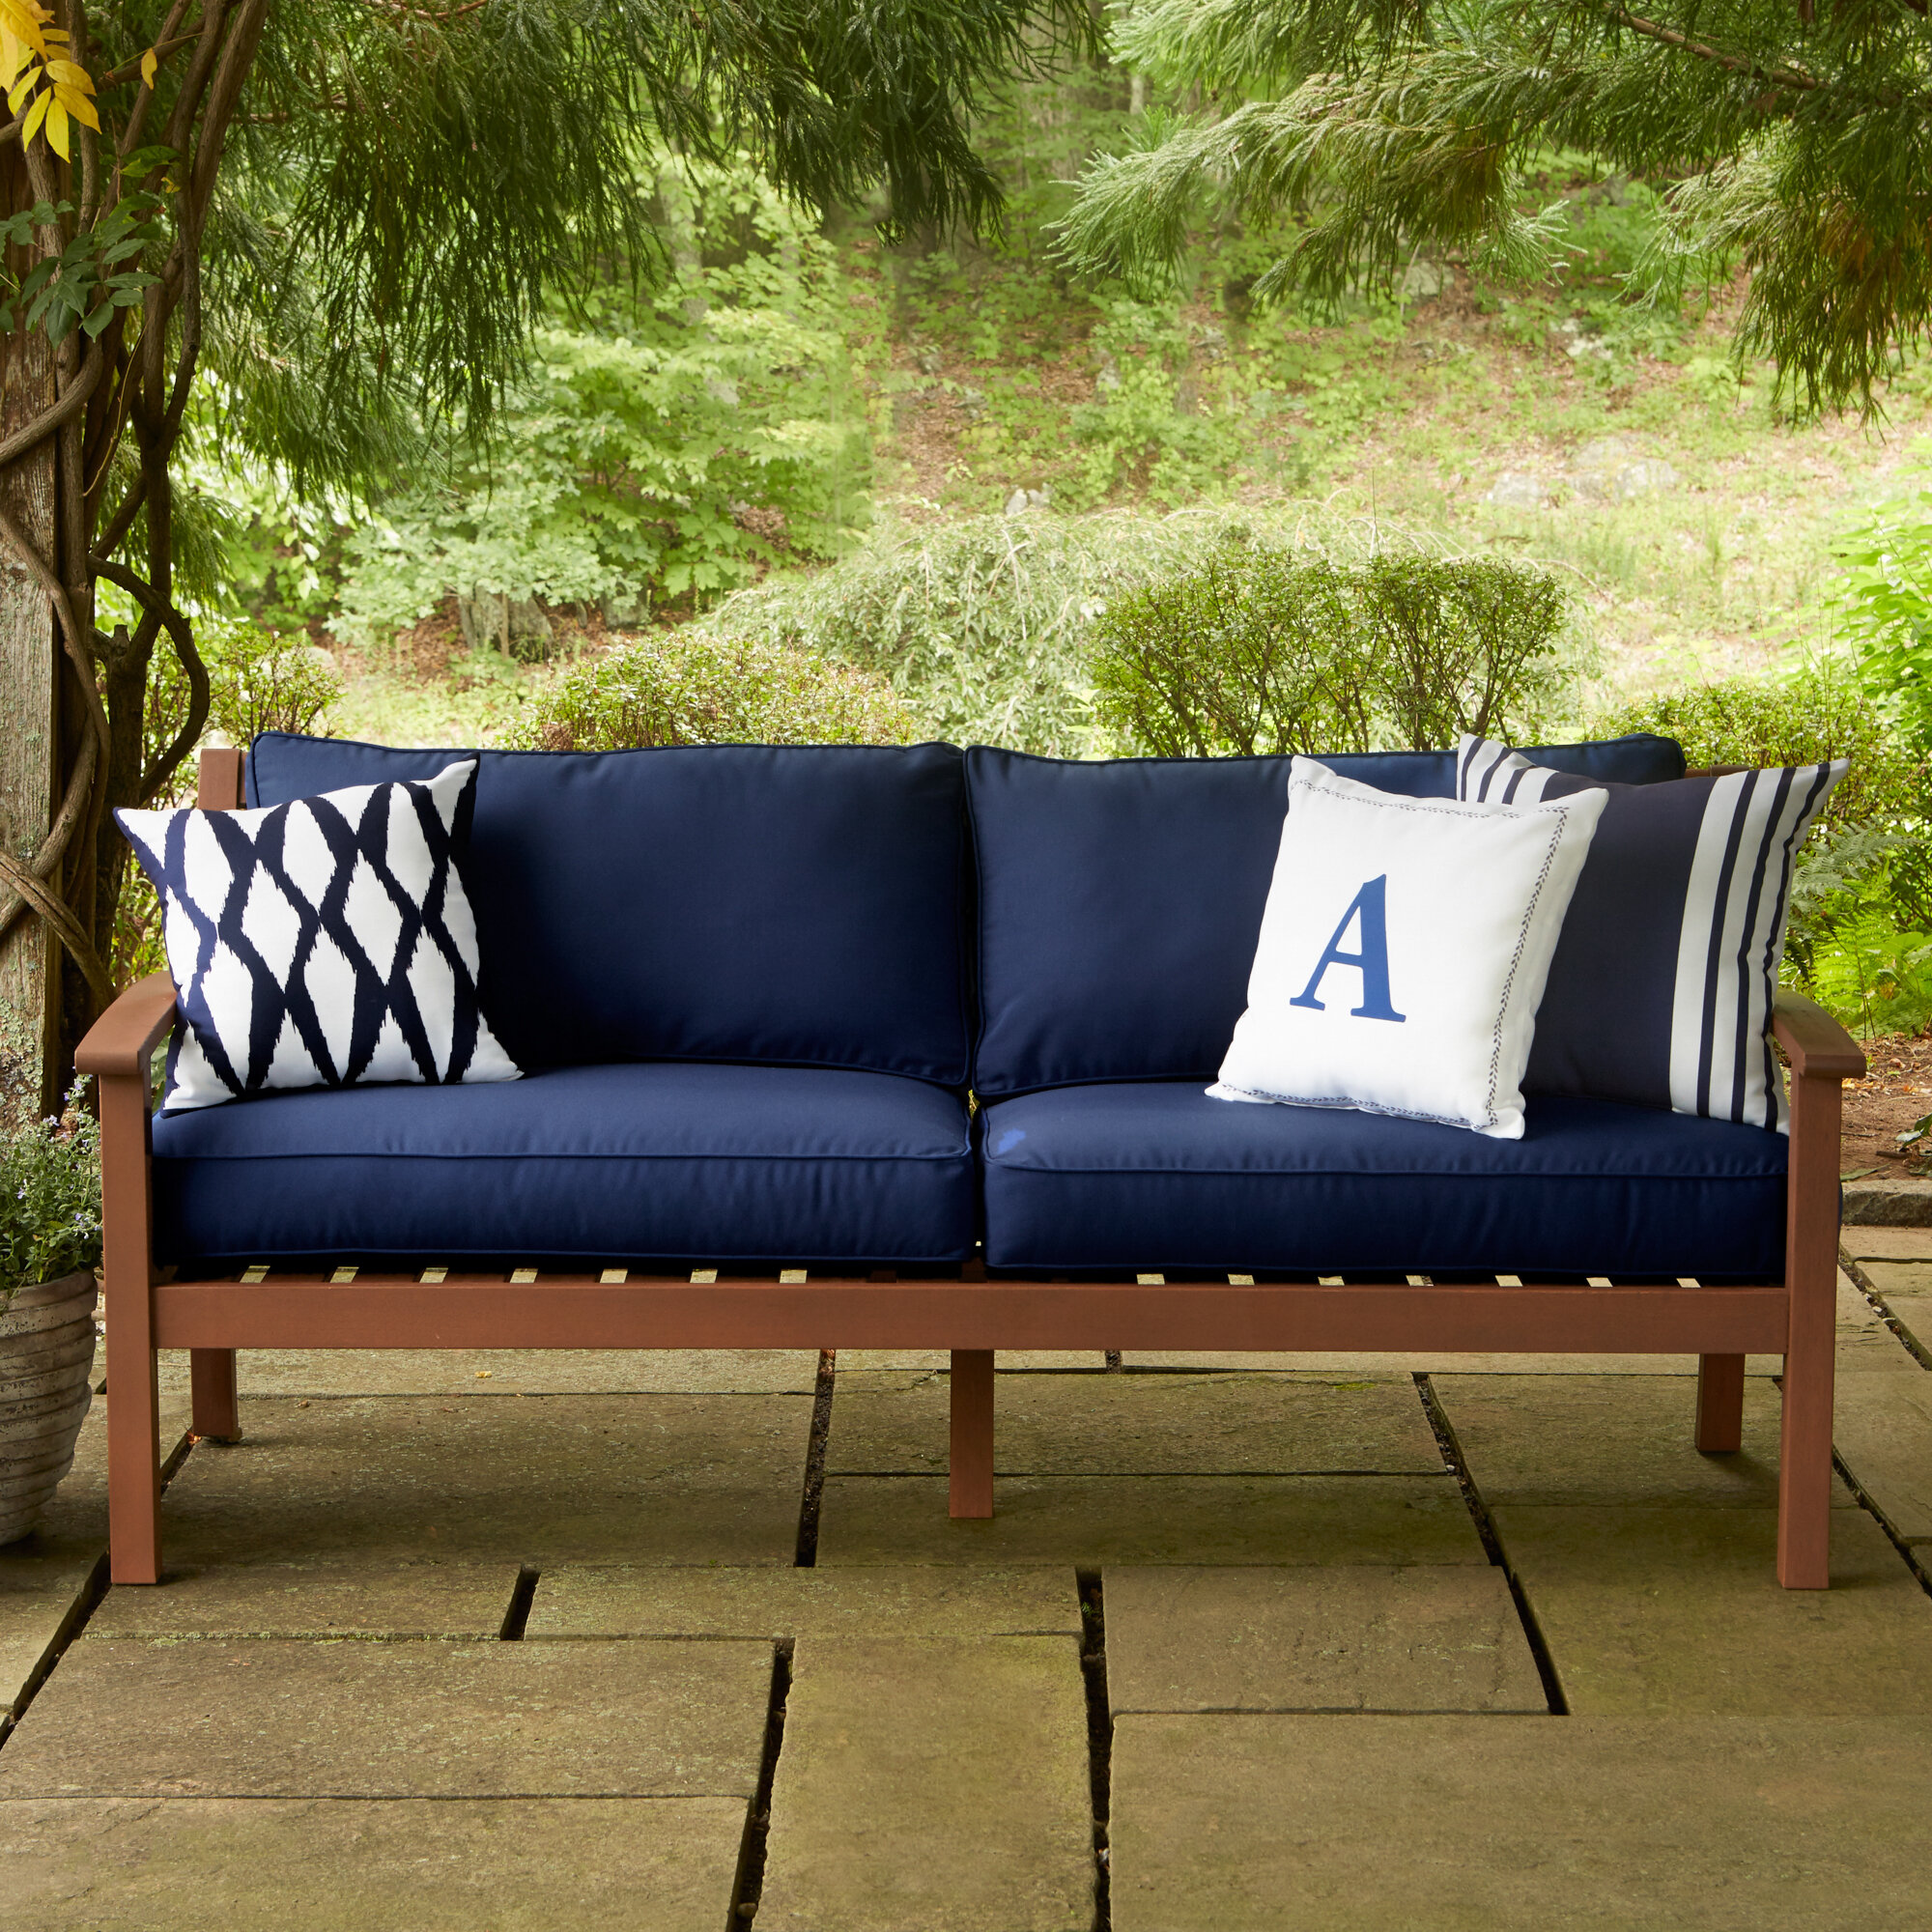 Birch lane heritage rossi patio sofa with cushions reviews birch lane